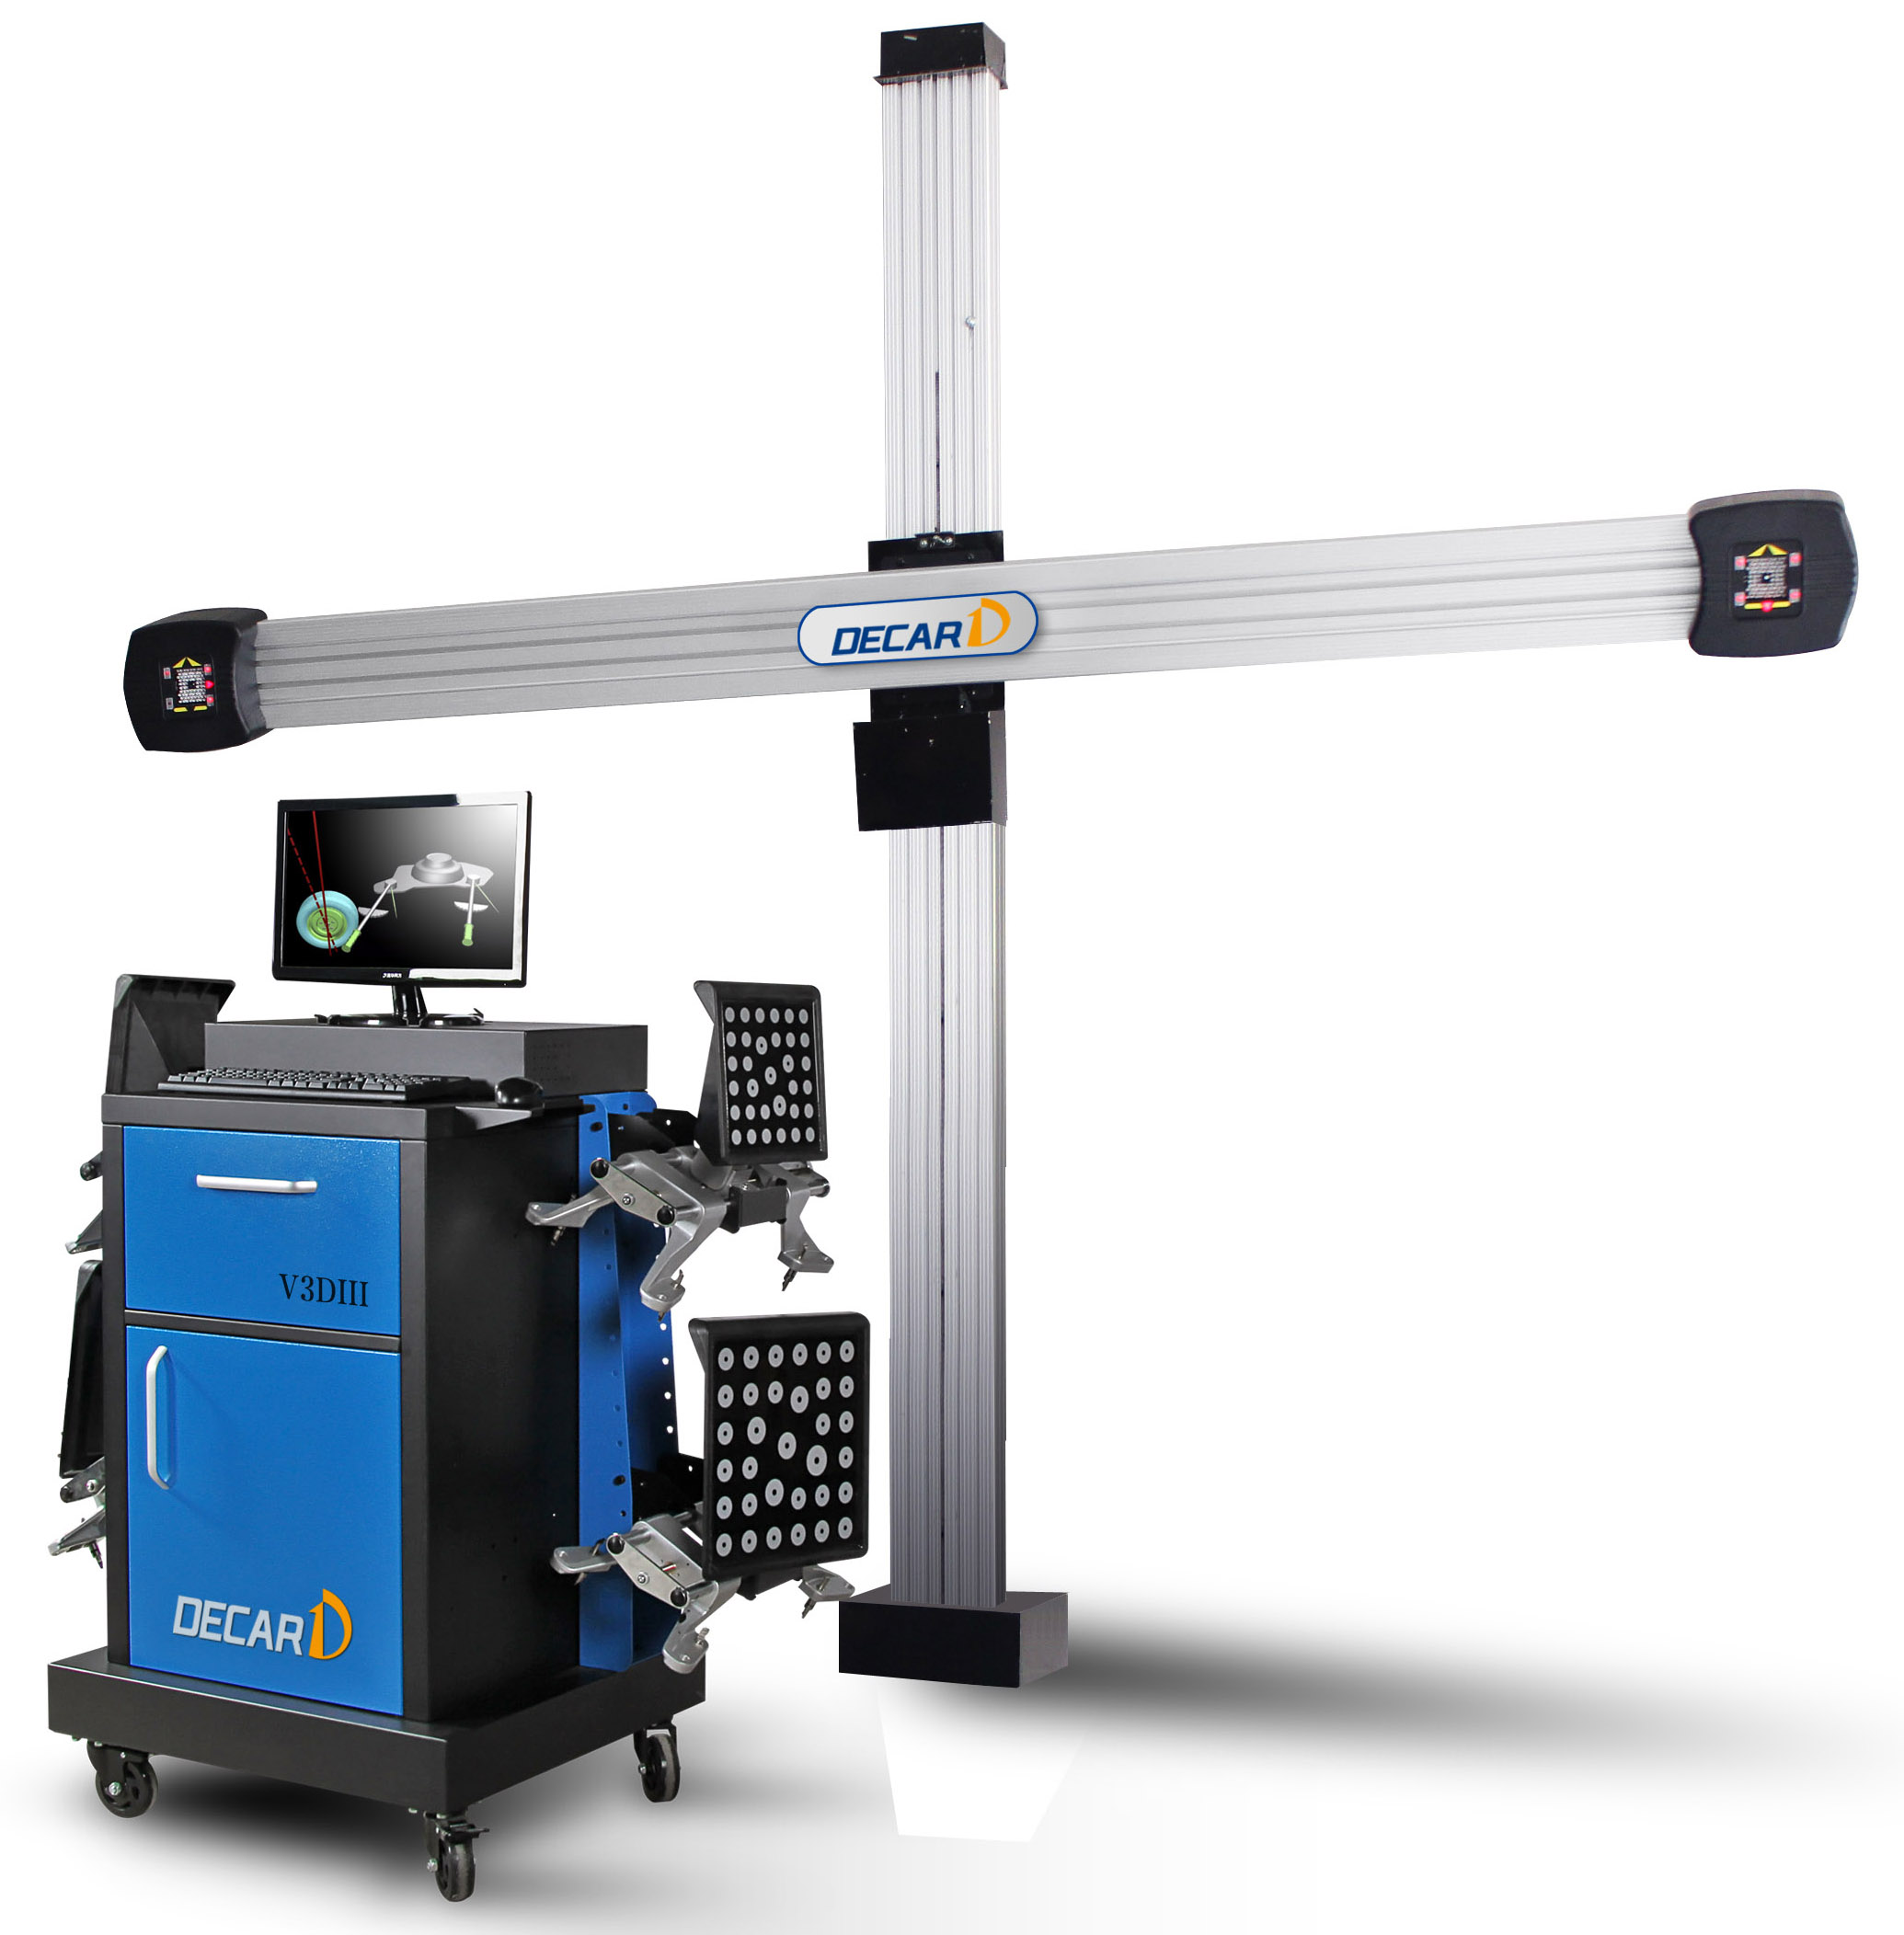 3D wheel alignment machine DK-V3DIII from factory